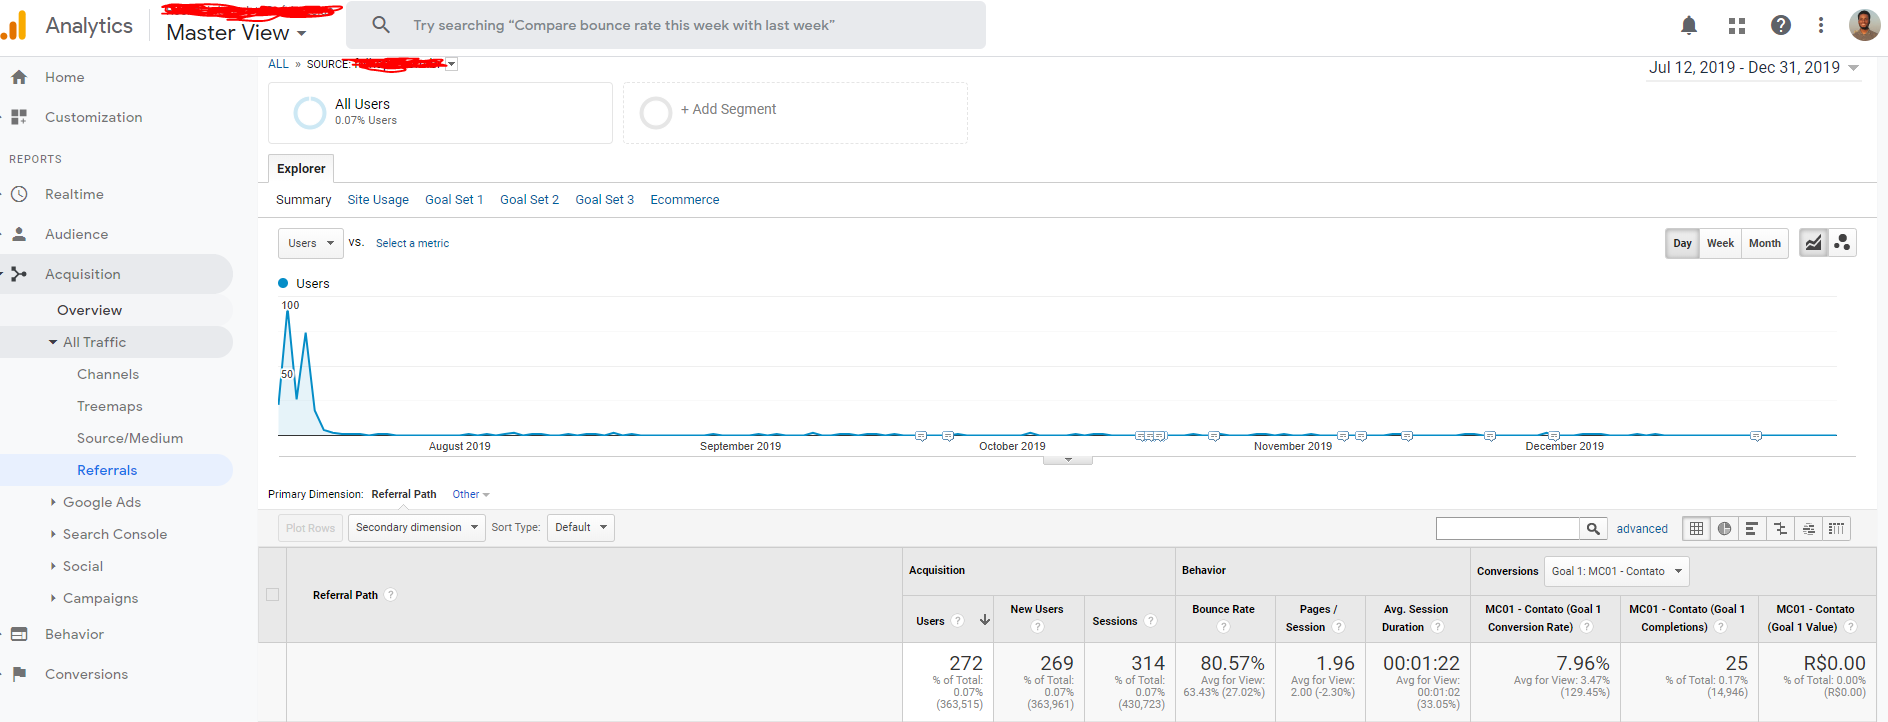 Referral Traffic - via Google Analytics